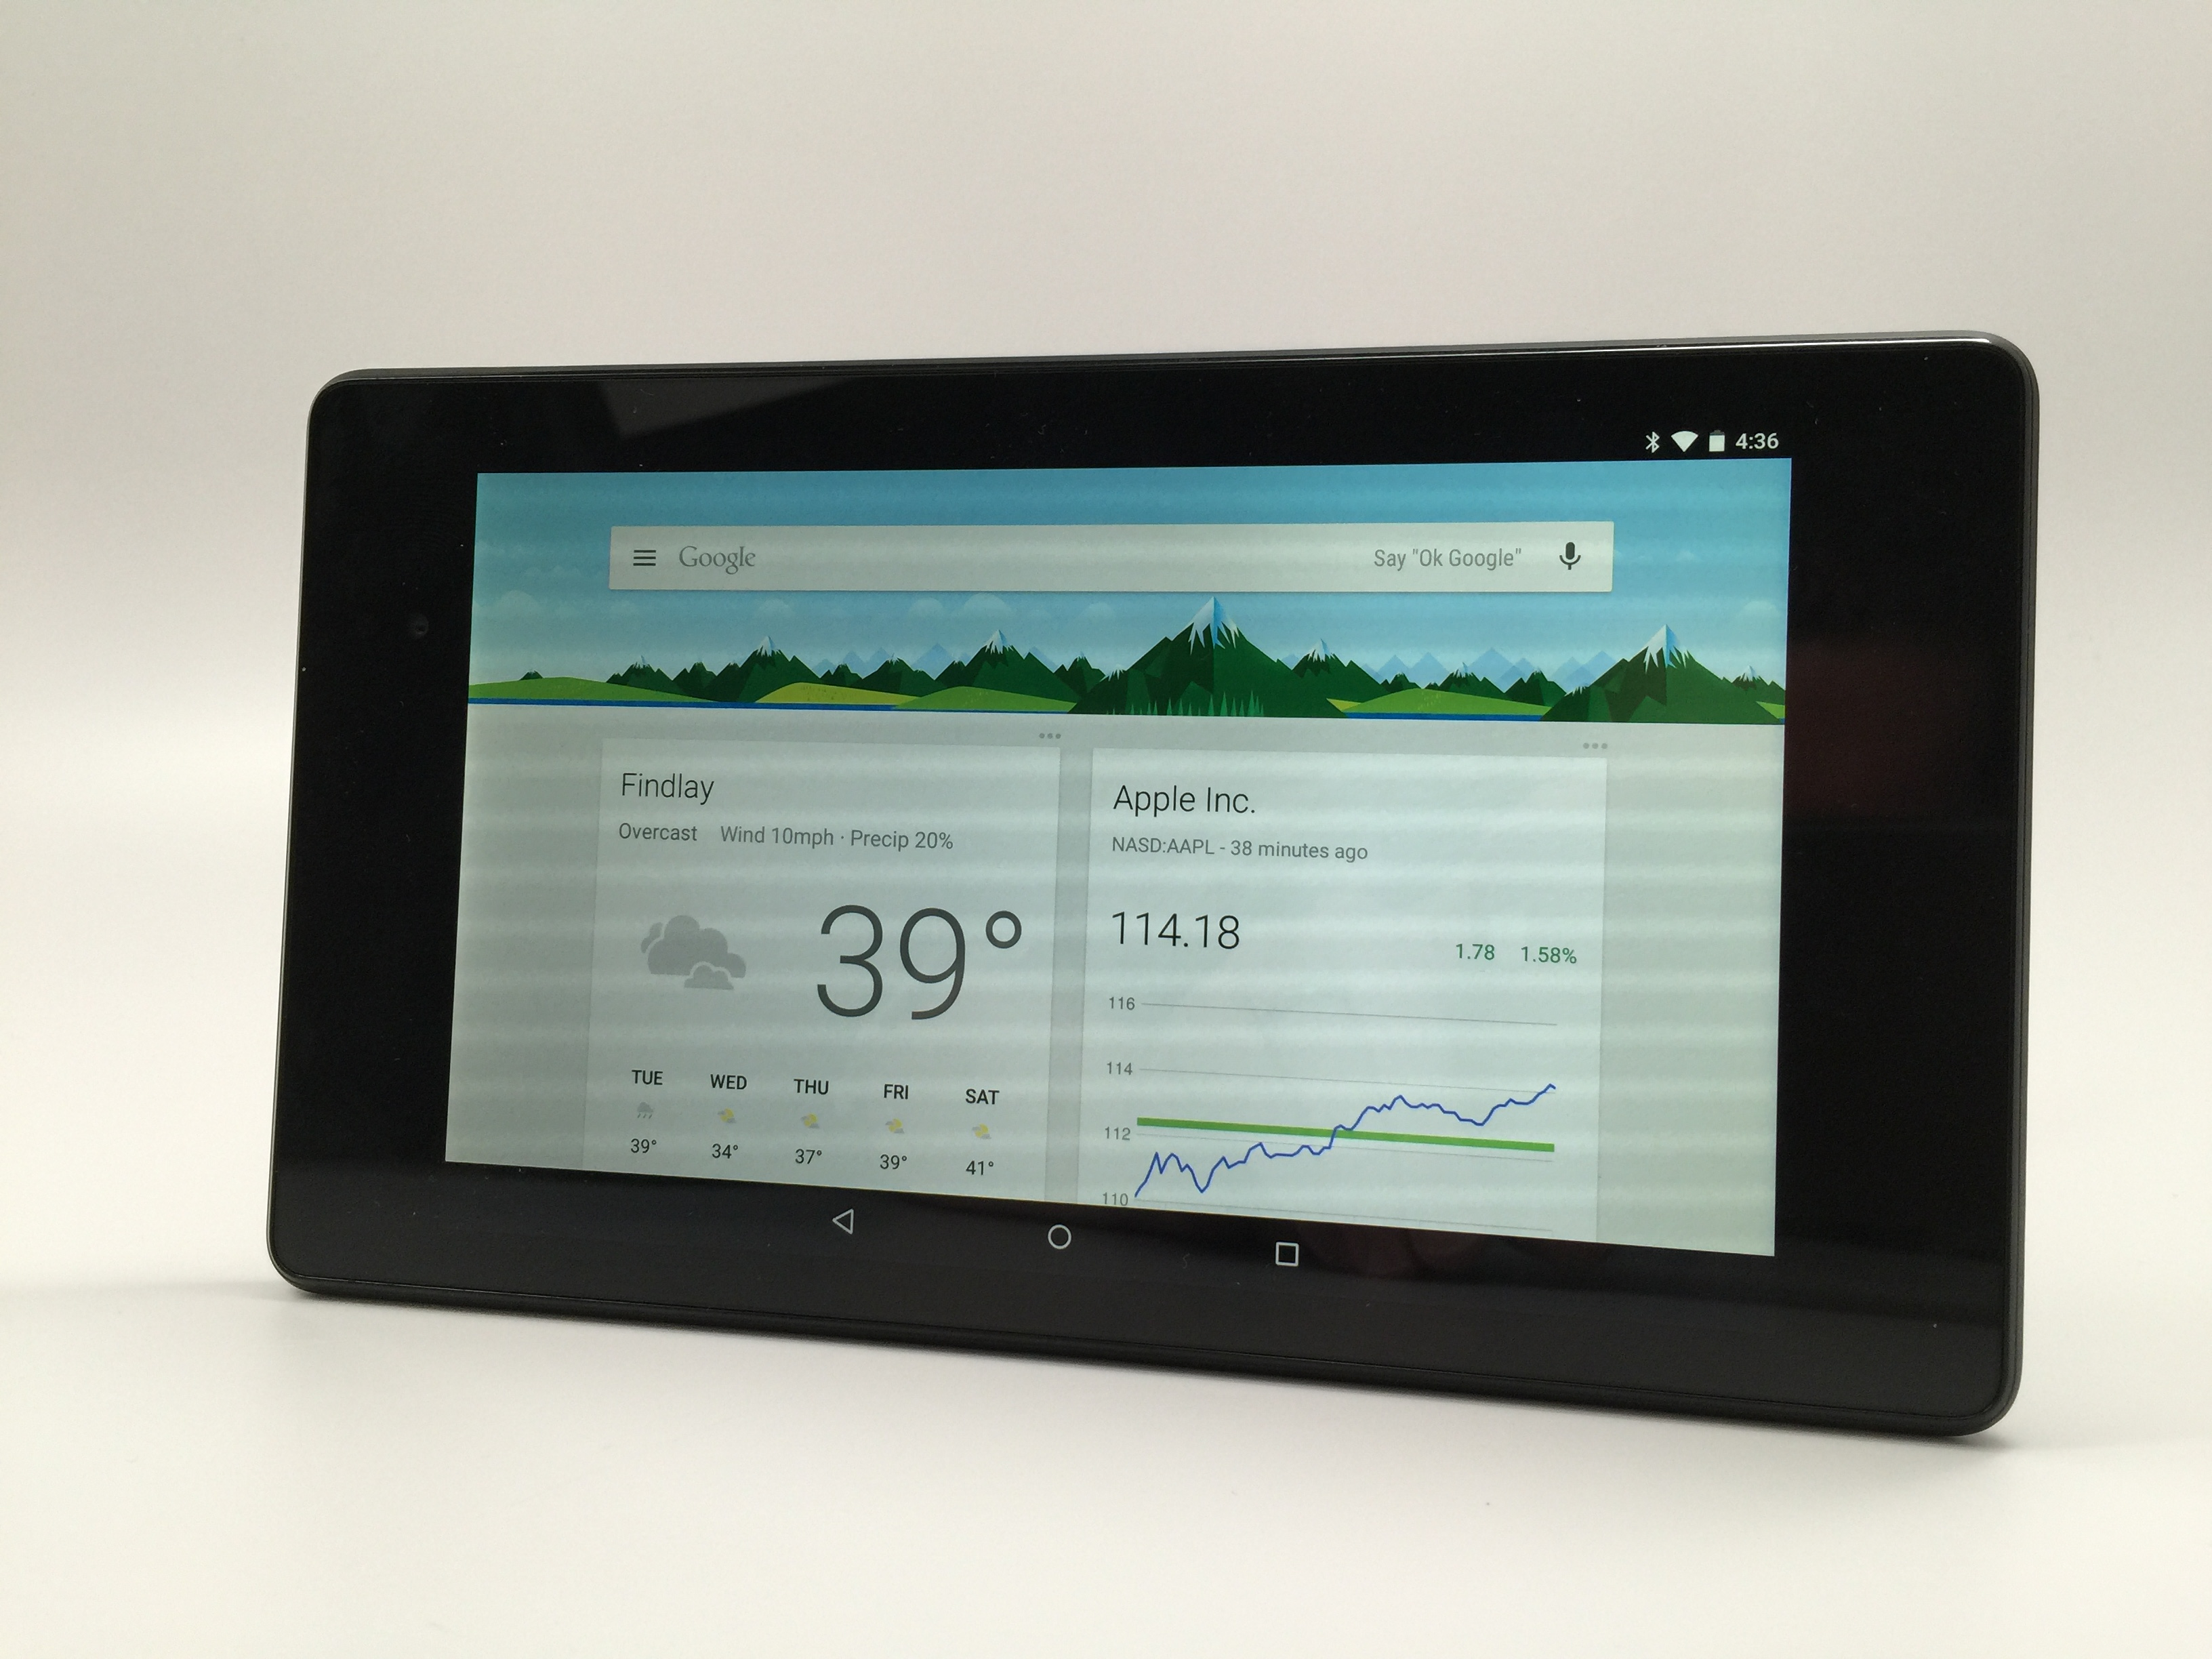 Android 5 0 1 lollipop and 5 0 2 update for nexus devices android - The Nexus 7 2013 Lte Android 5 0 2 Lollipop Update Is Rolling Out Ota And Is Now Available To Manually Install Through Adb Nexus 7 2013 Users Familiar With